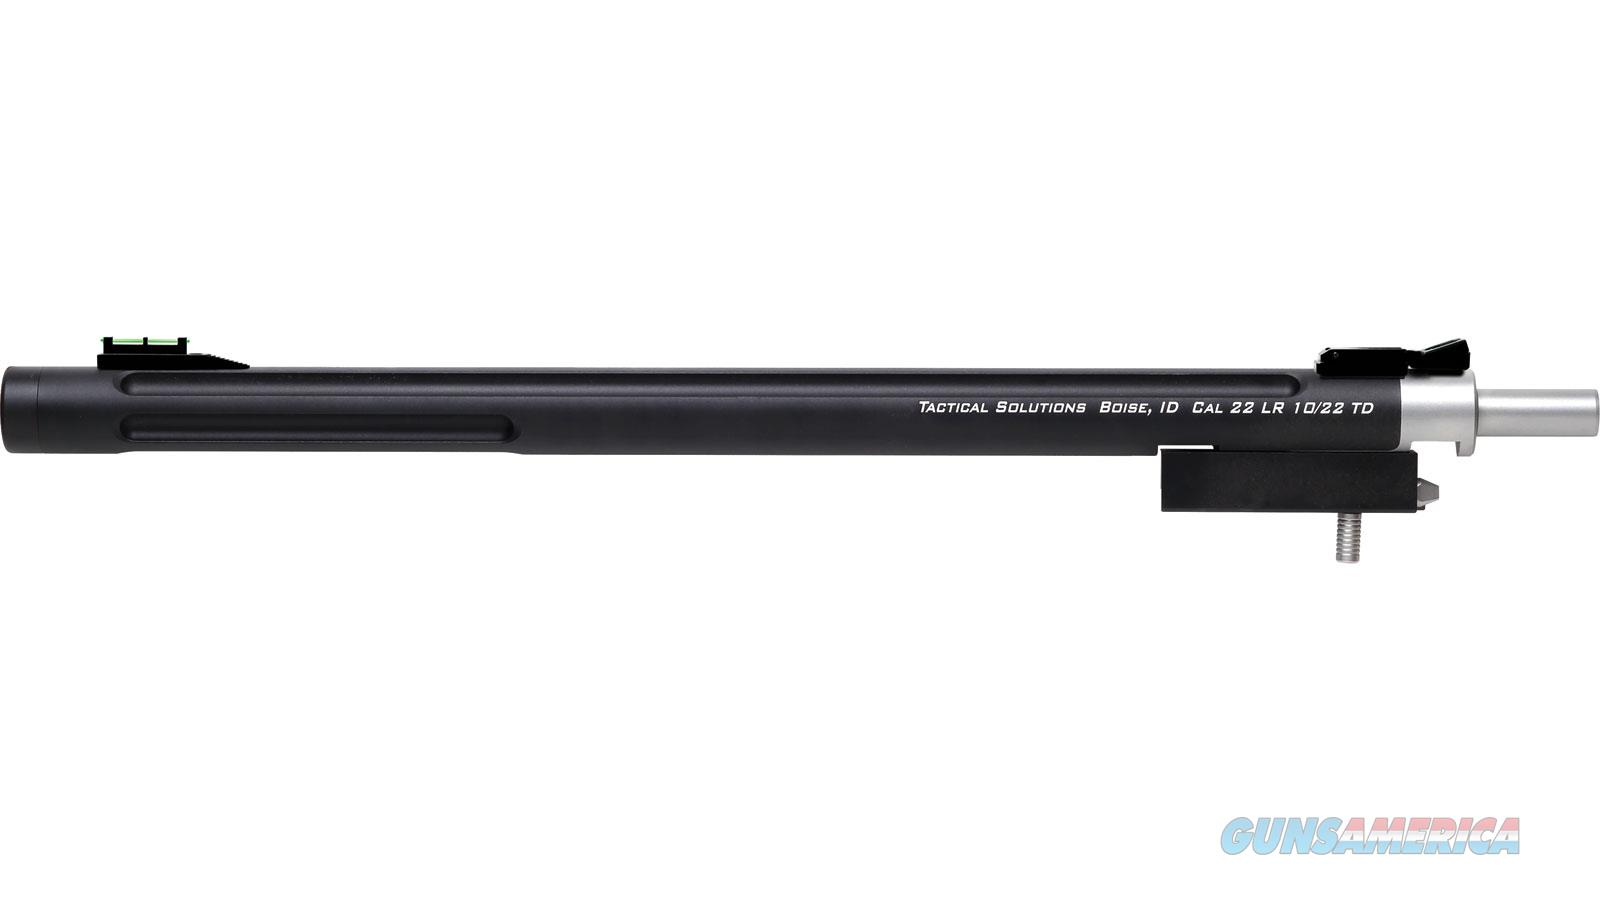 Tactical Solutions Bbl 10/22 Takedow 16.5 Thrd Bull Fos Blk 1022TD-MB  Non-Guns > Barrels